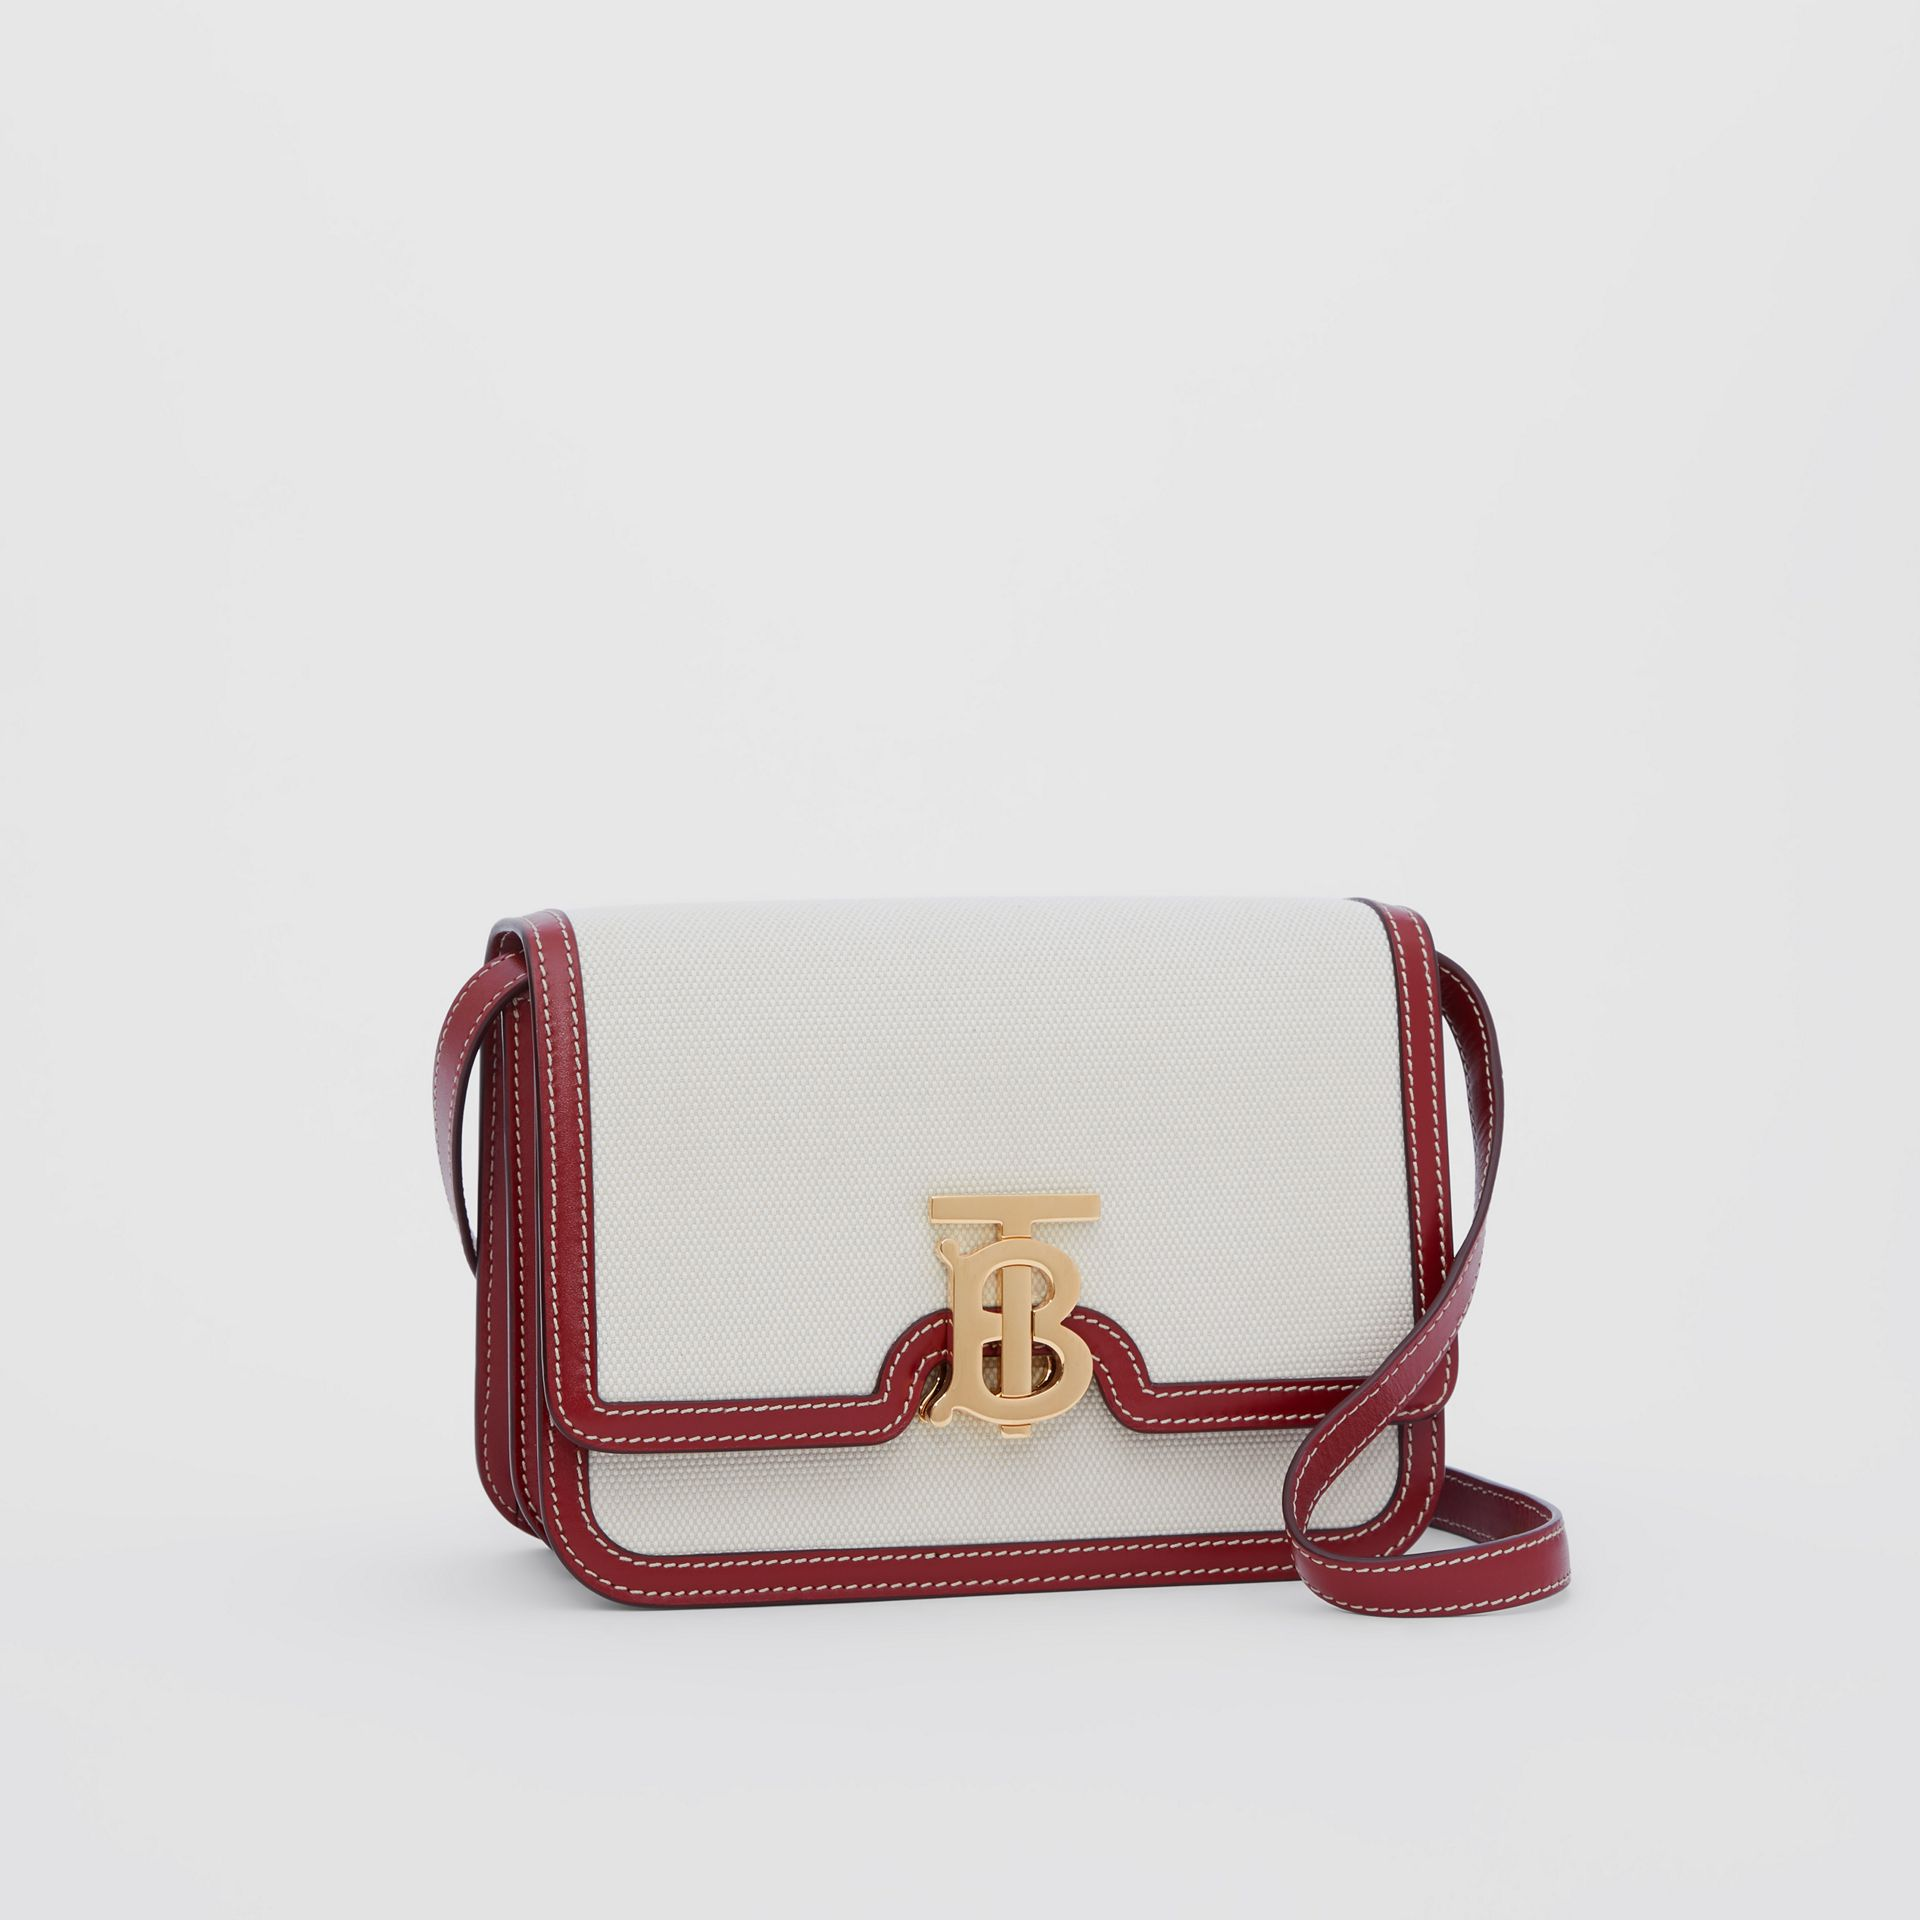 Small Two-tone Canvas and Leather TB Bag in Natural/dark Carmine - Women | Burberry Hong Kong S.A.R - gallery image 5